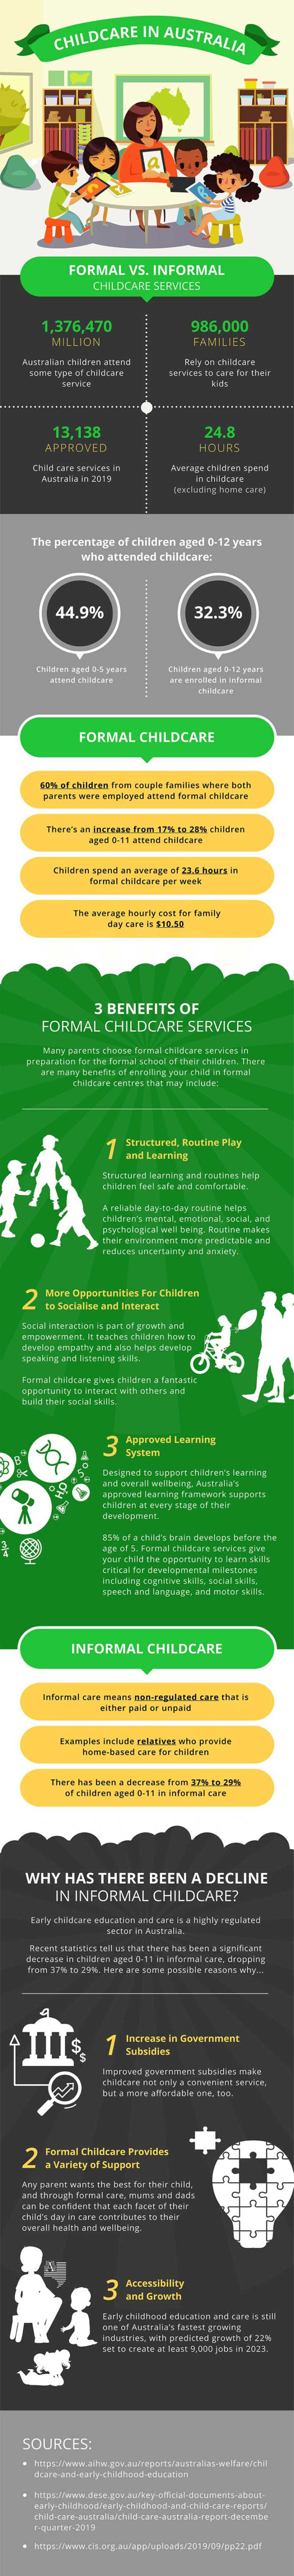 Childcare in Australia: Facts and Figures